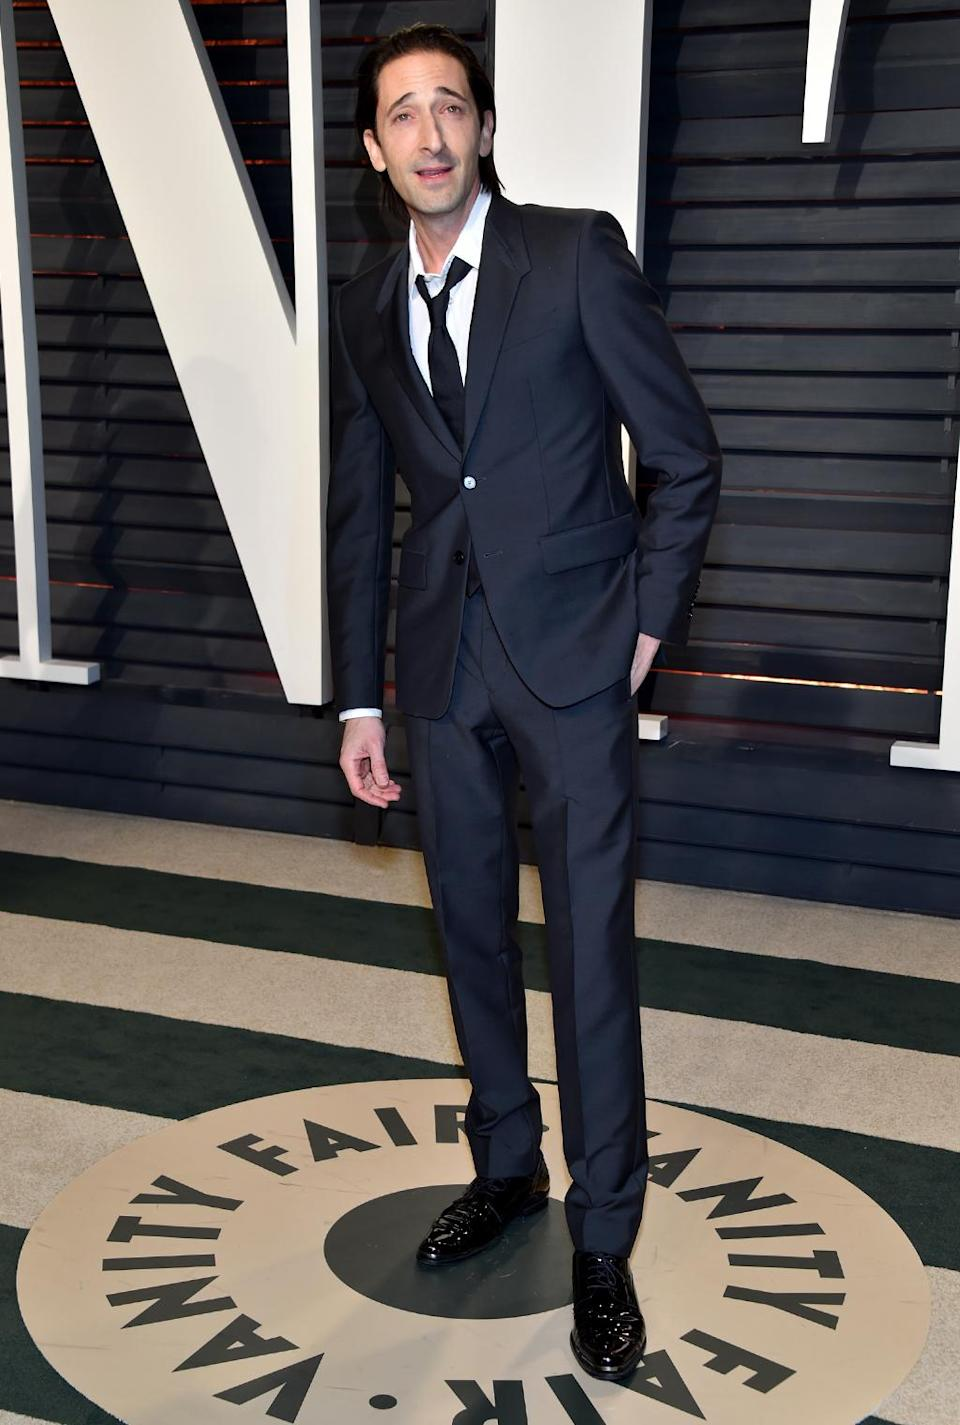 <p>Adrien Brody attends the 2017 Vanity Fair Oscar Party hosted by Graydon Carter at Wallis Annenberg Center for the Performing Arts on February 26, 2017 in Beverly Hills, California. (Photo by Pascal Le Segretain/Getty Images) </p>